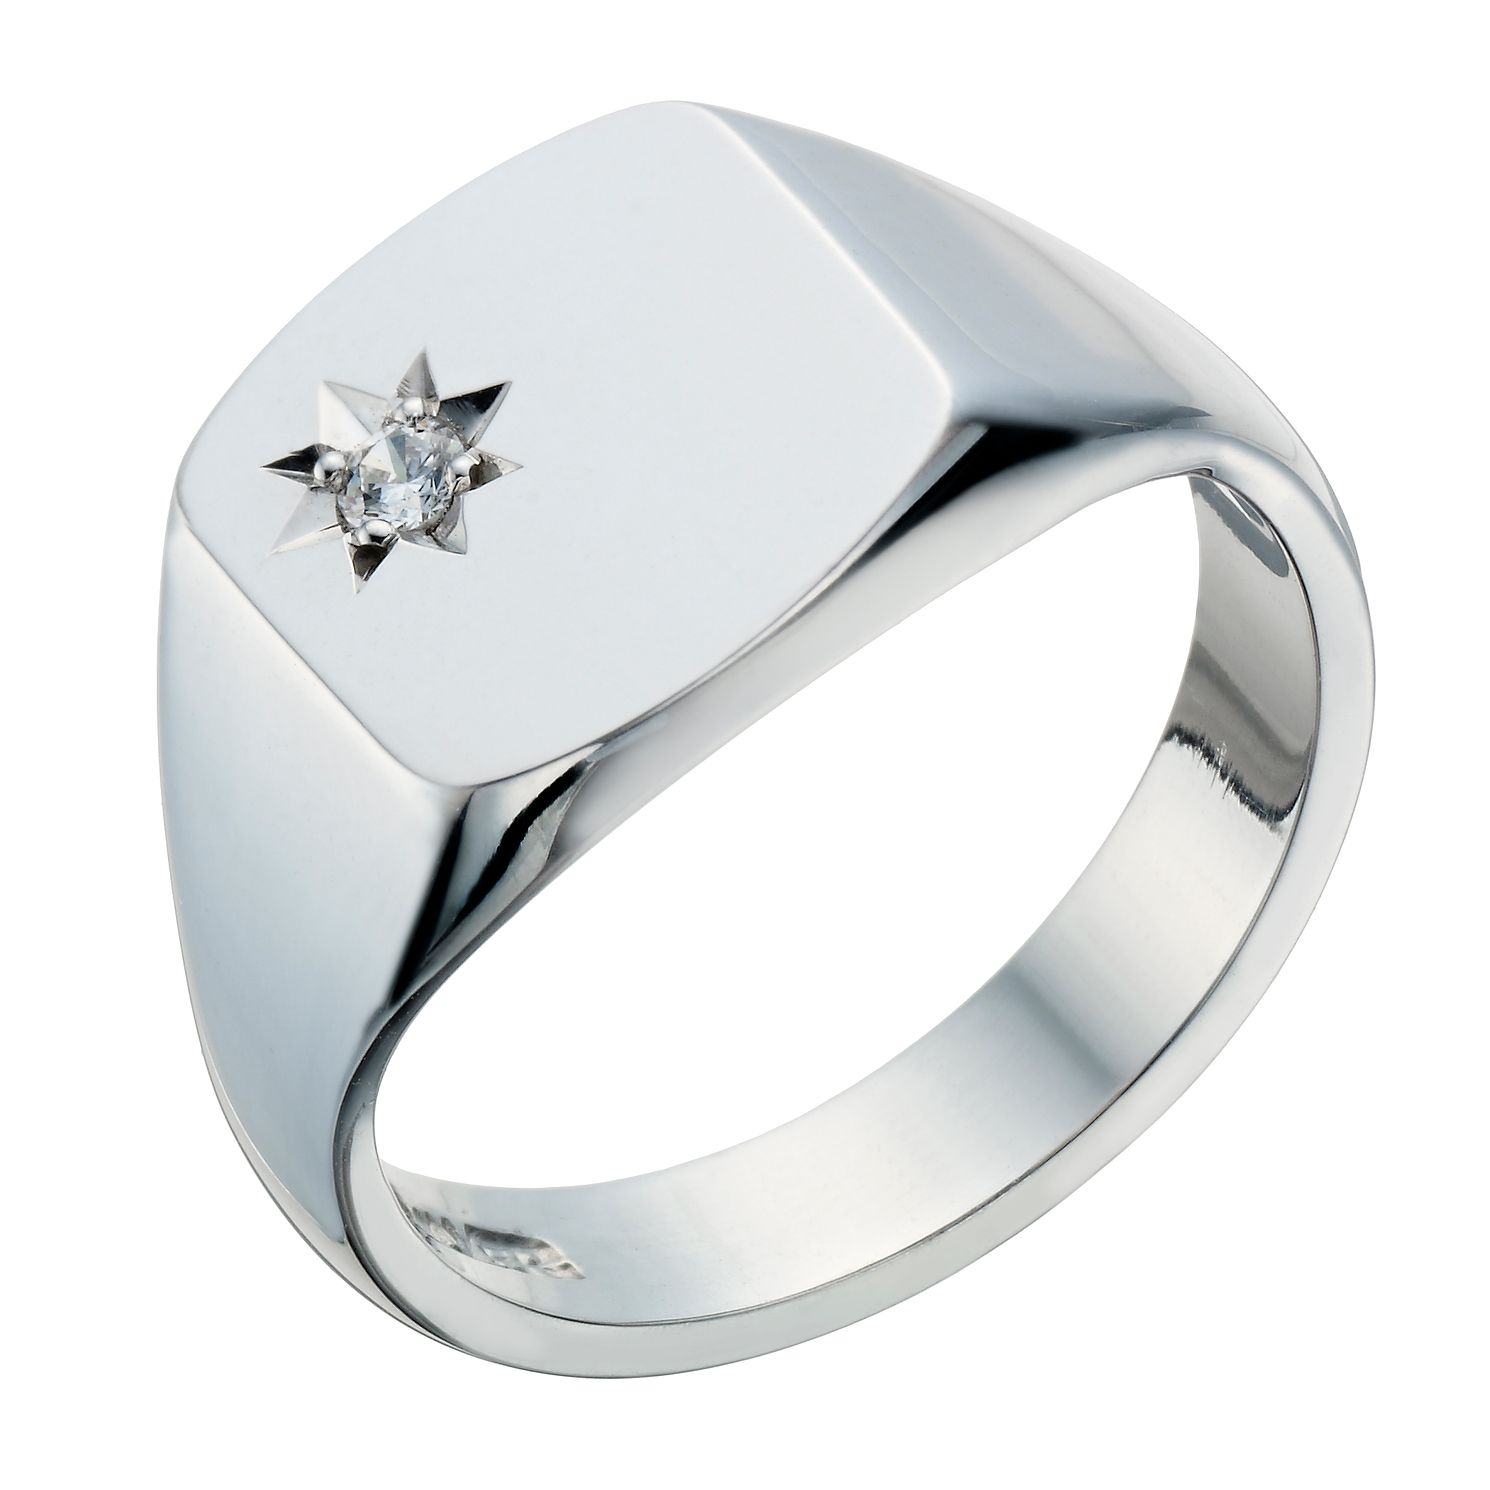 Sterling Silver Diamond Set Signet Ring - Product number 1705342